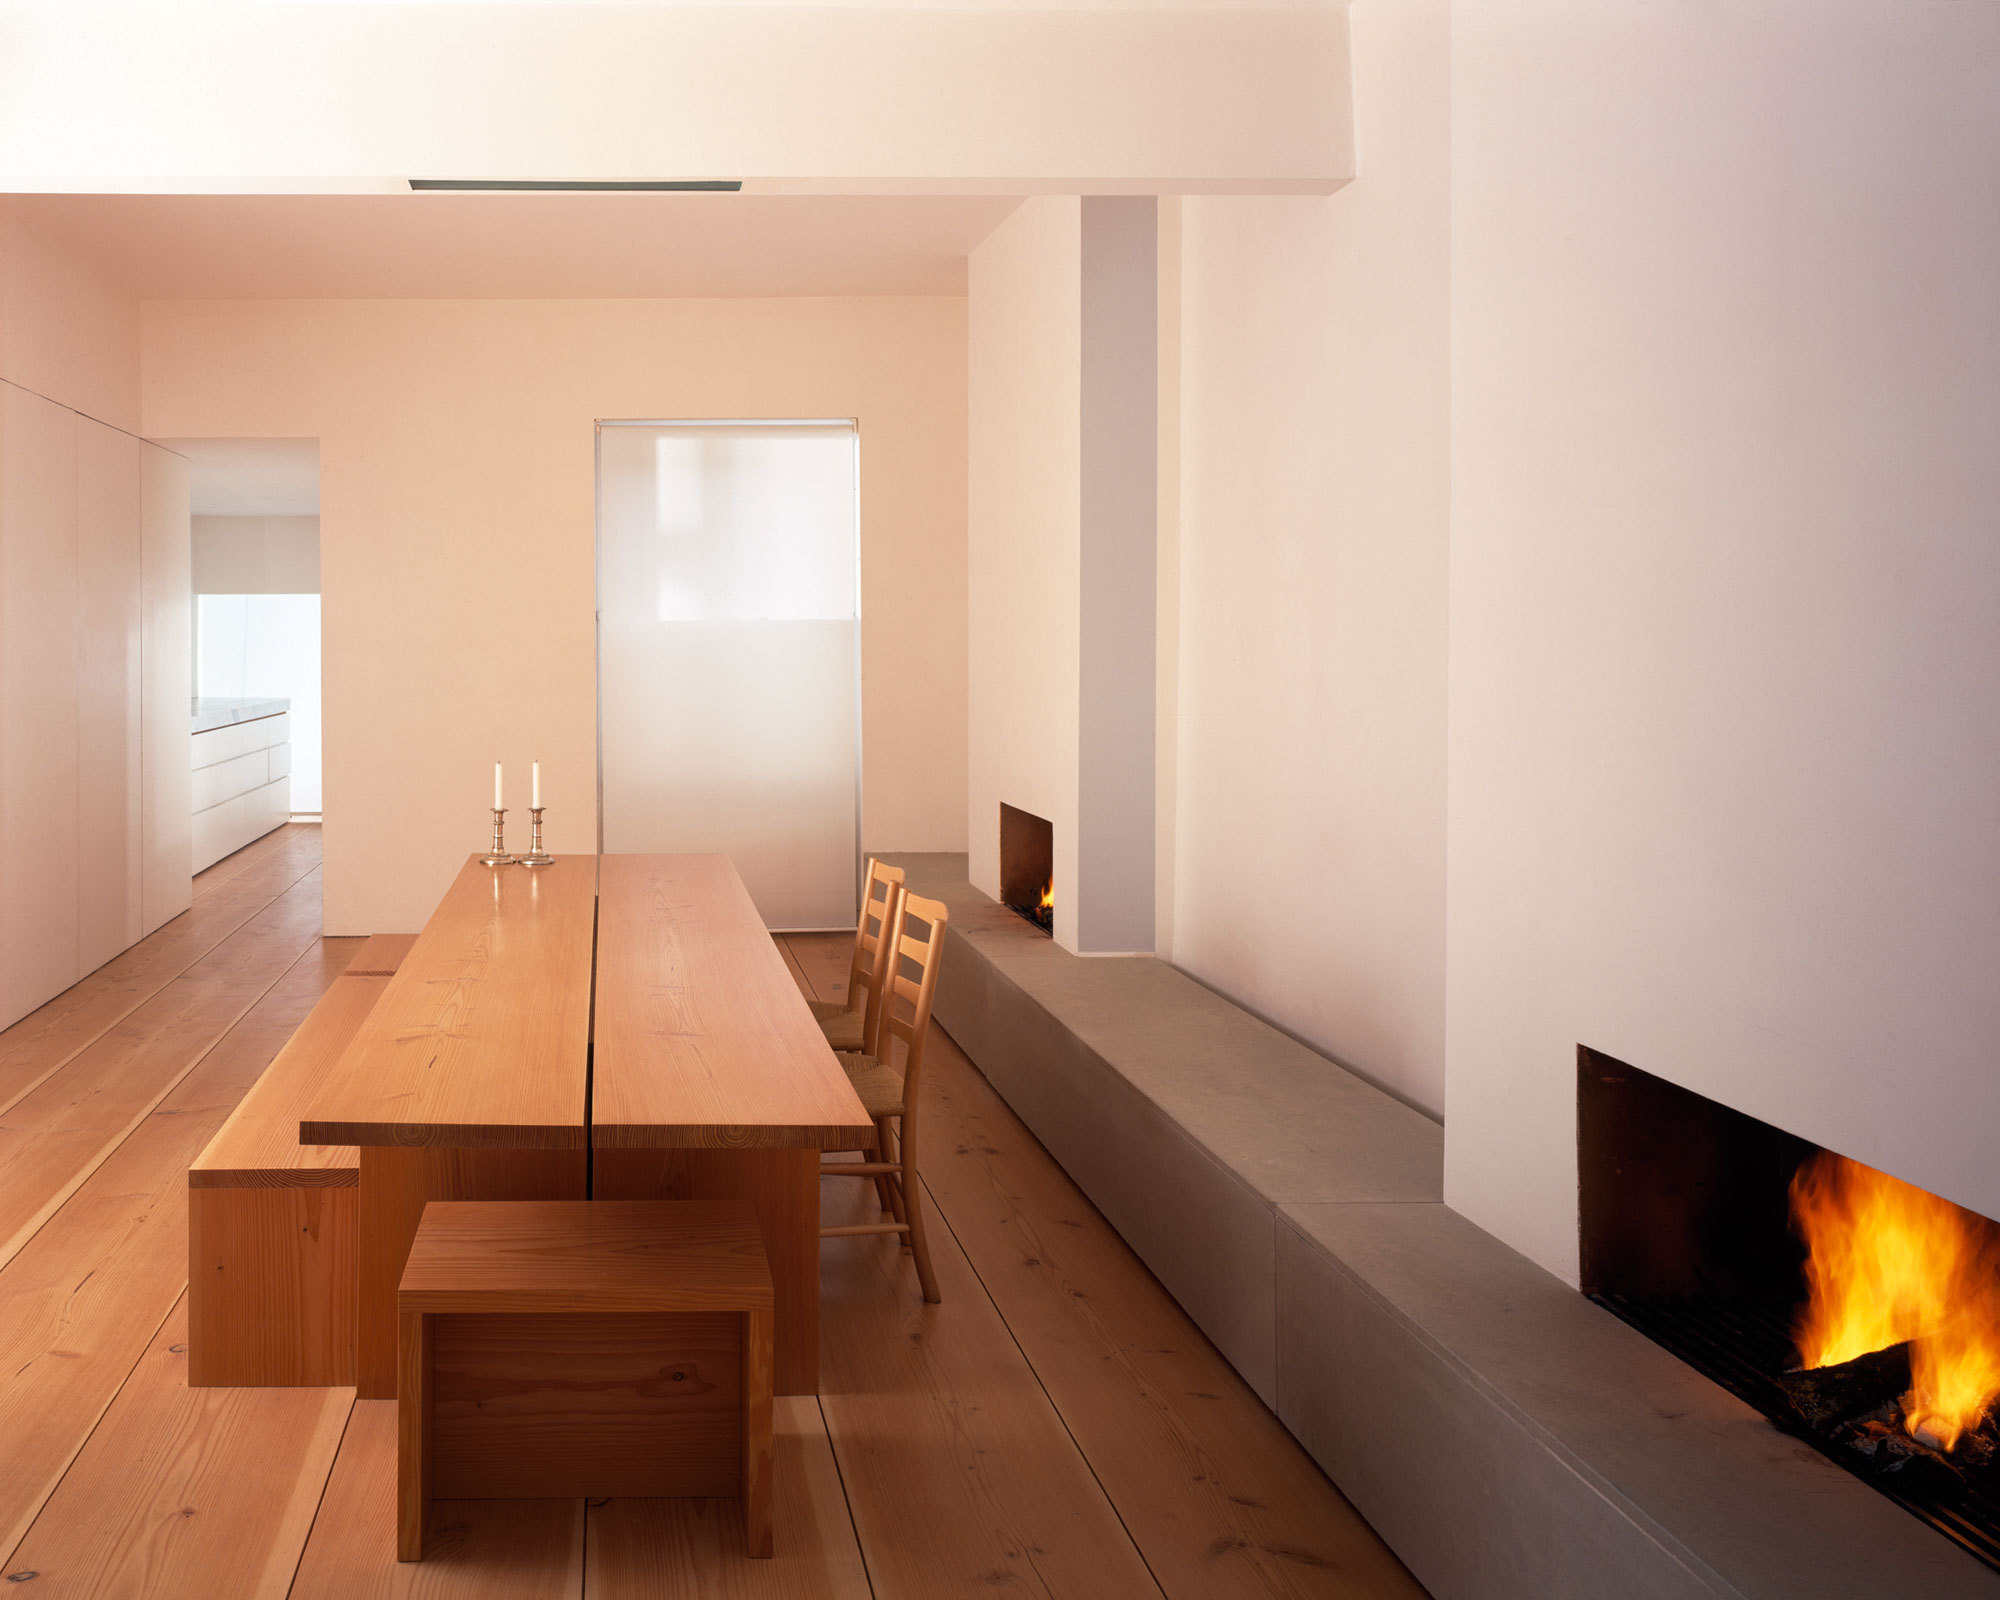 marble kitchen table set movable cabinets john pawson - house